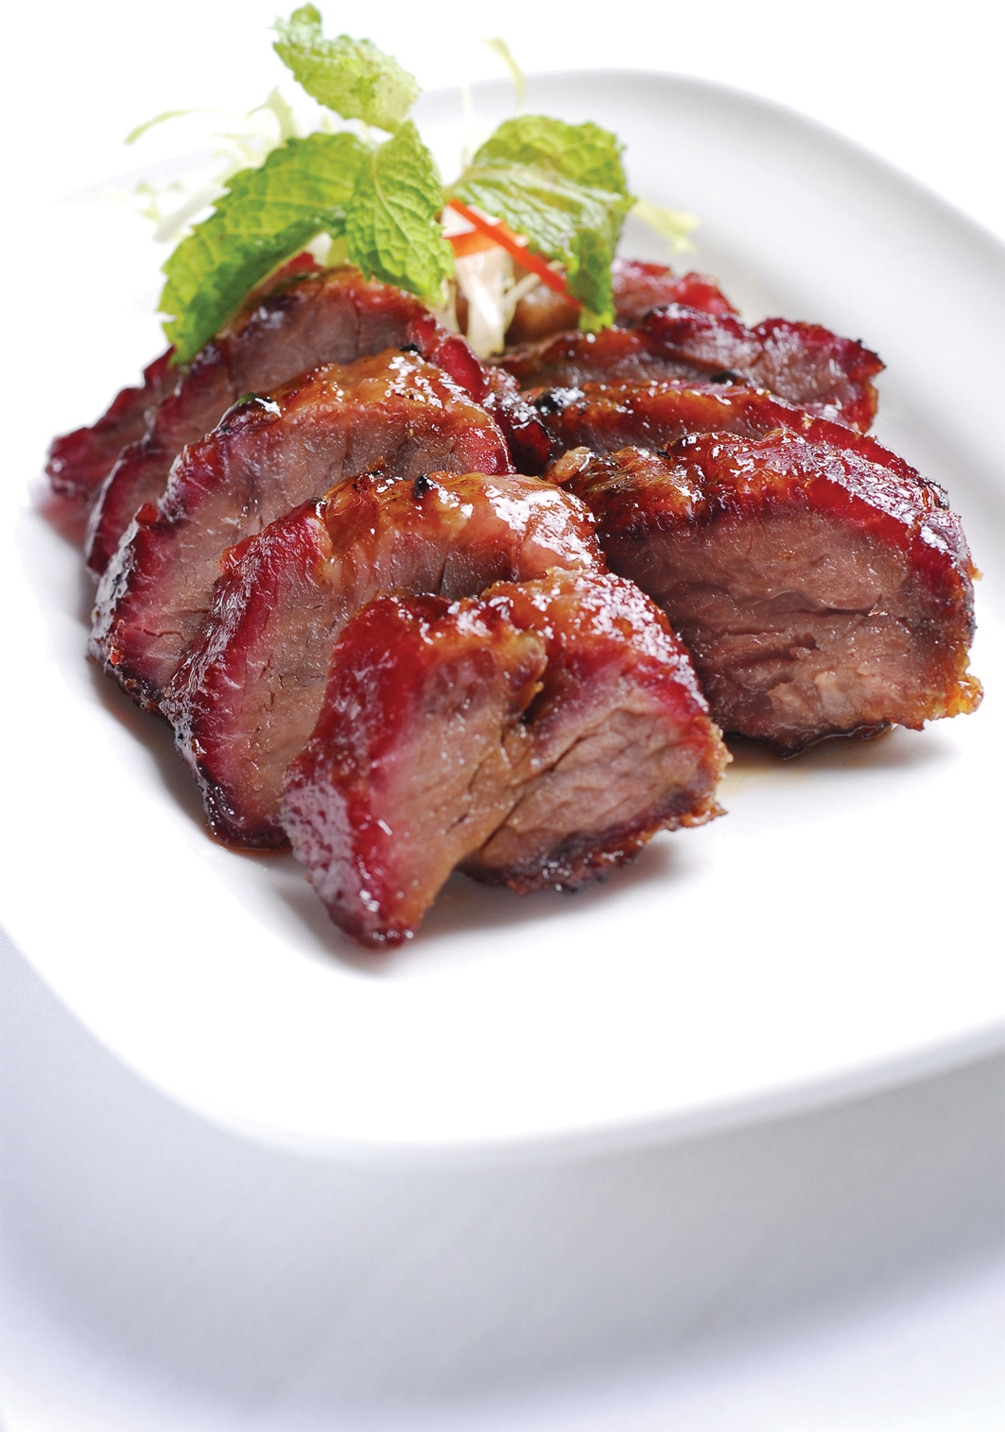 Barbecued Pork with Honey